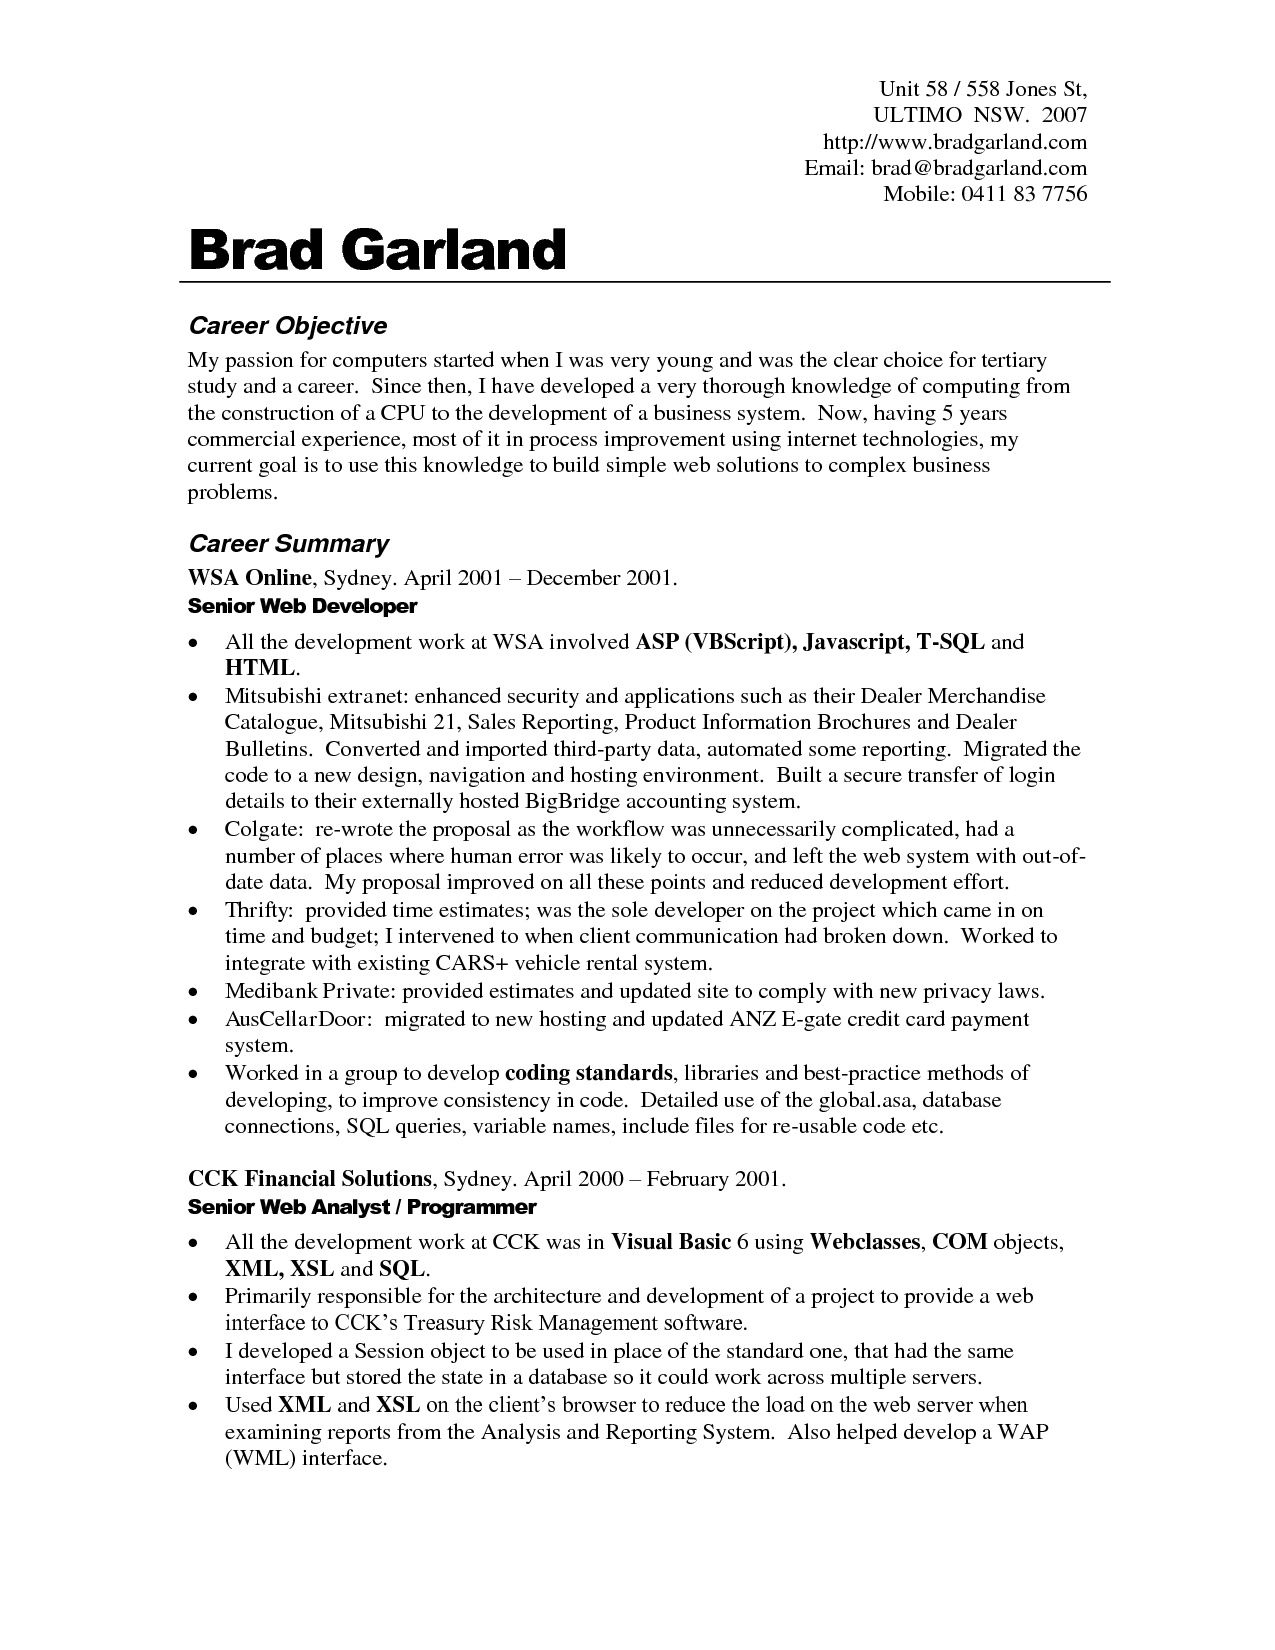 Exceptional Resume Examples Throughout Resume Introduction Samples